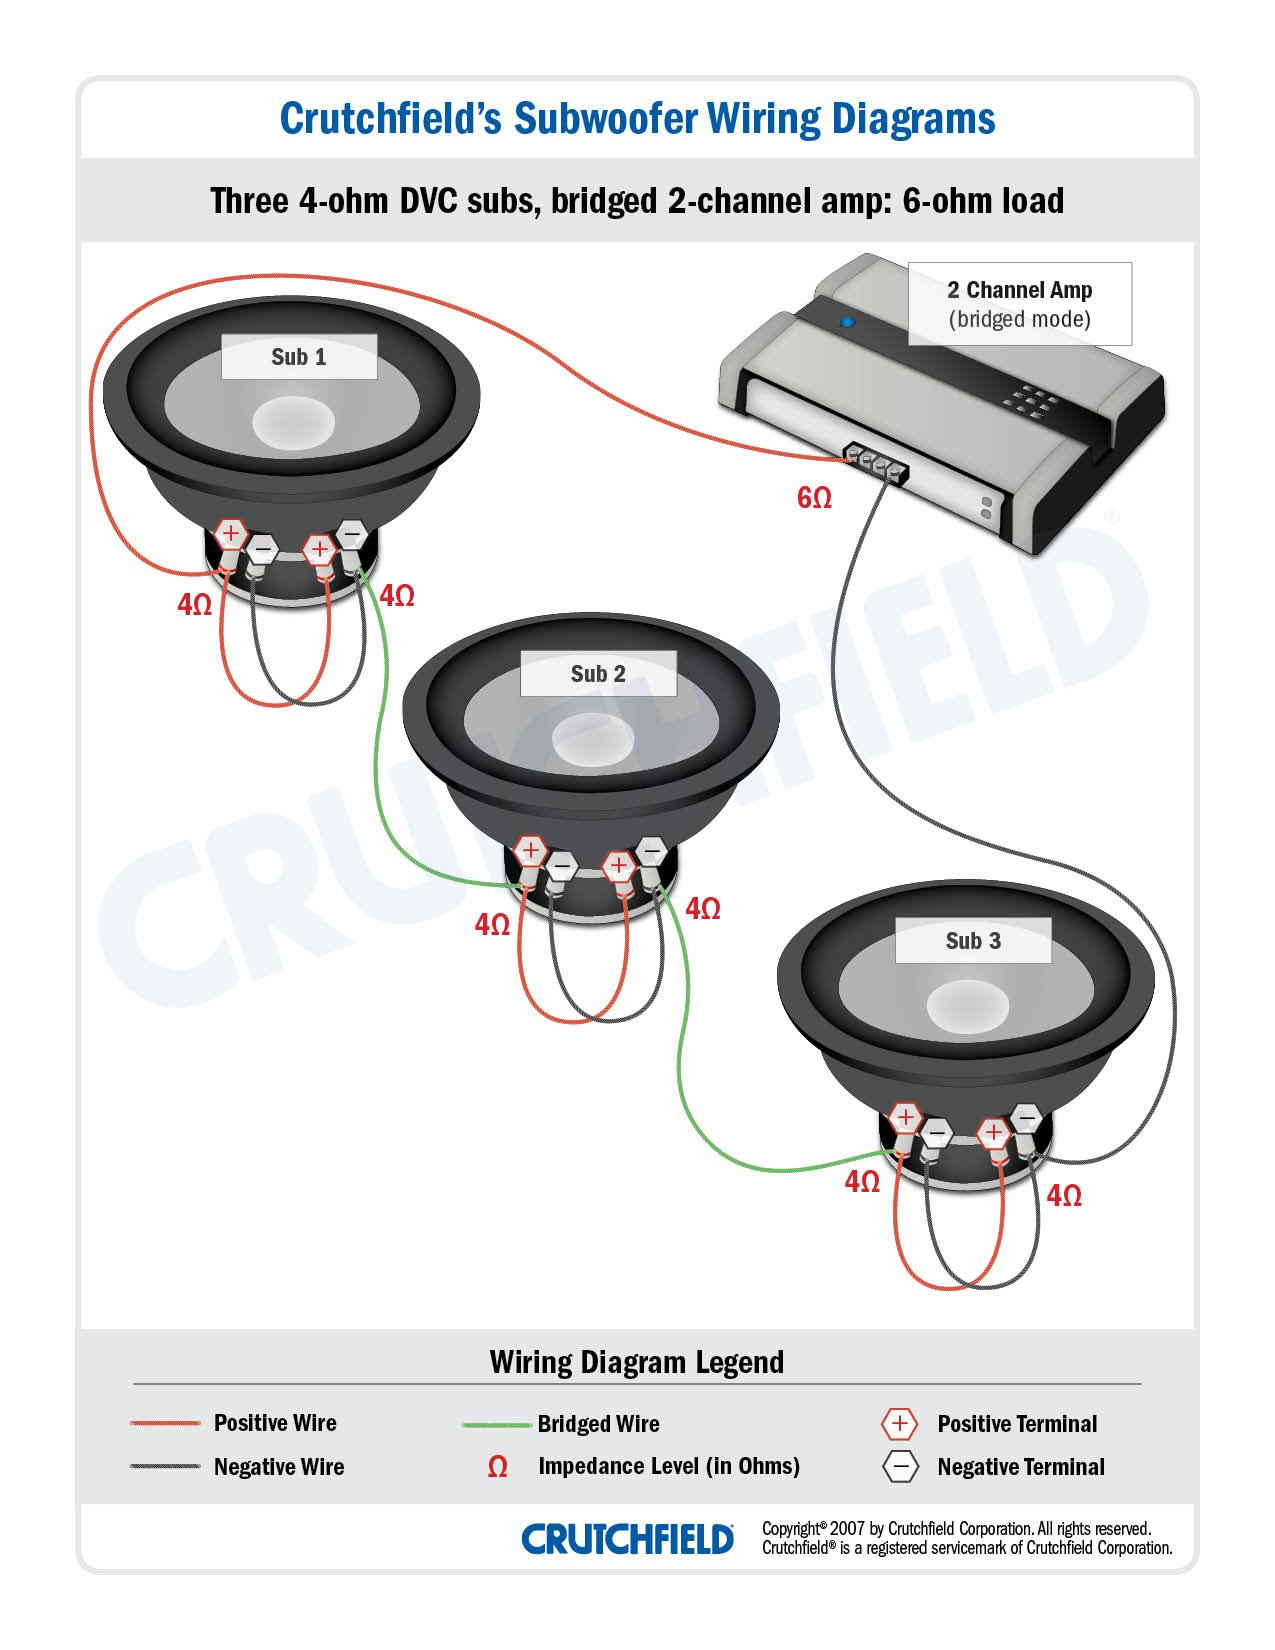 10 dvc subwoofer wiring diagrams wiring subwoofers — what's all this about ohms?